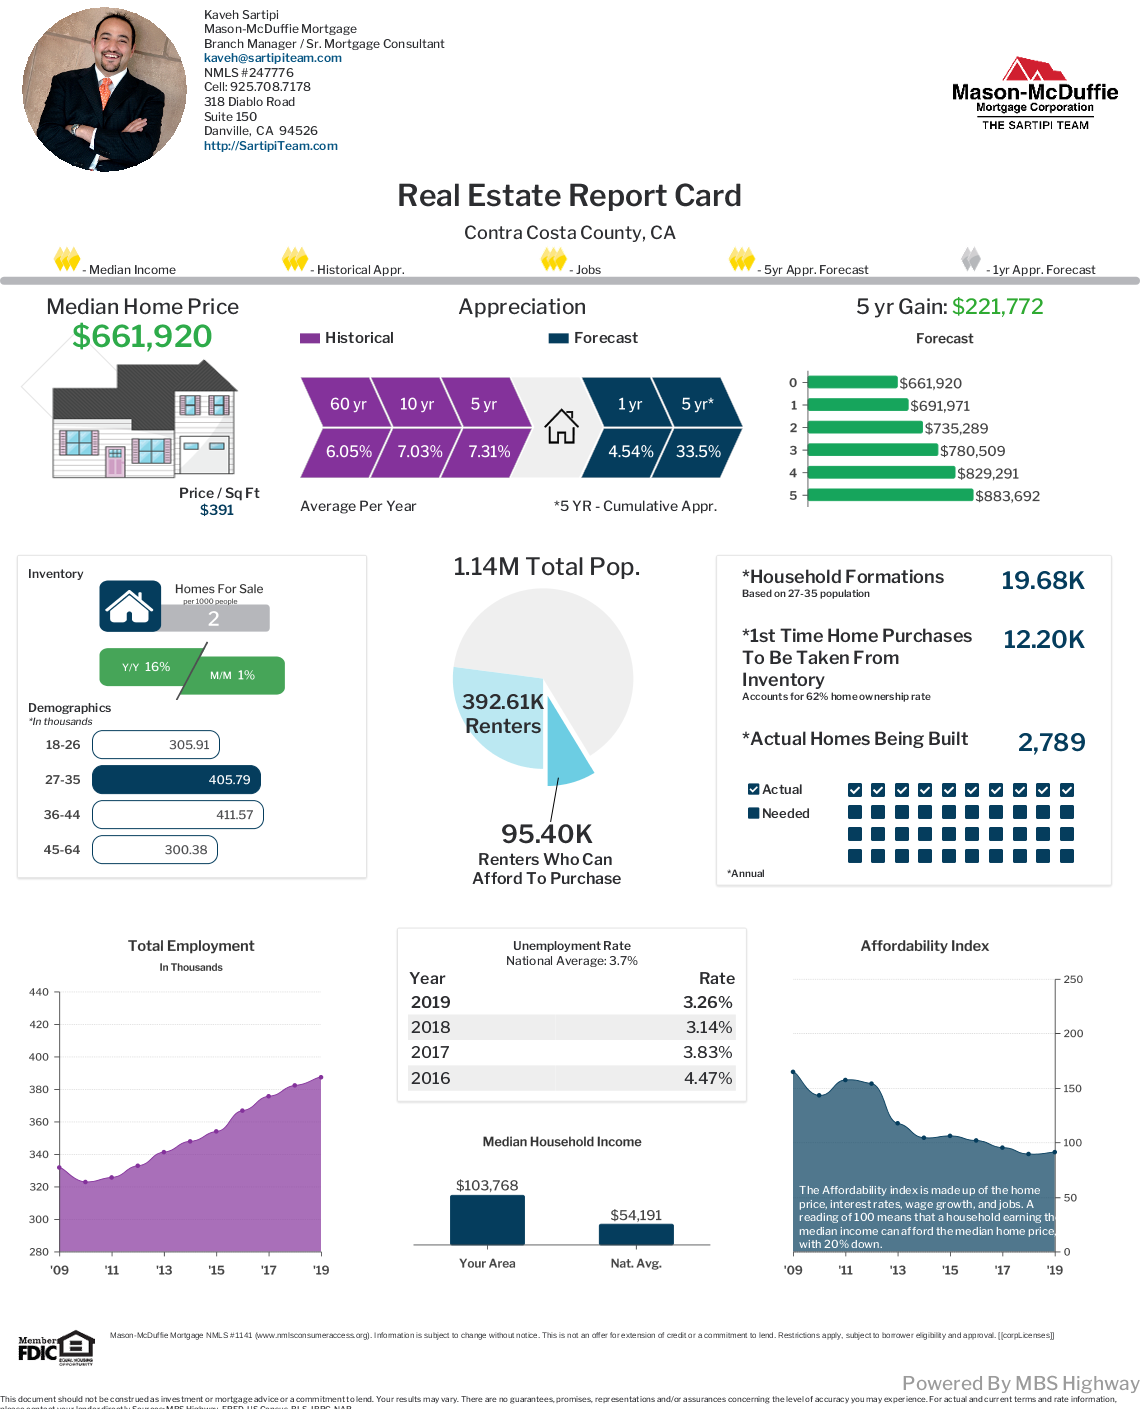 Real-Estate-Report-Card.png